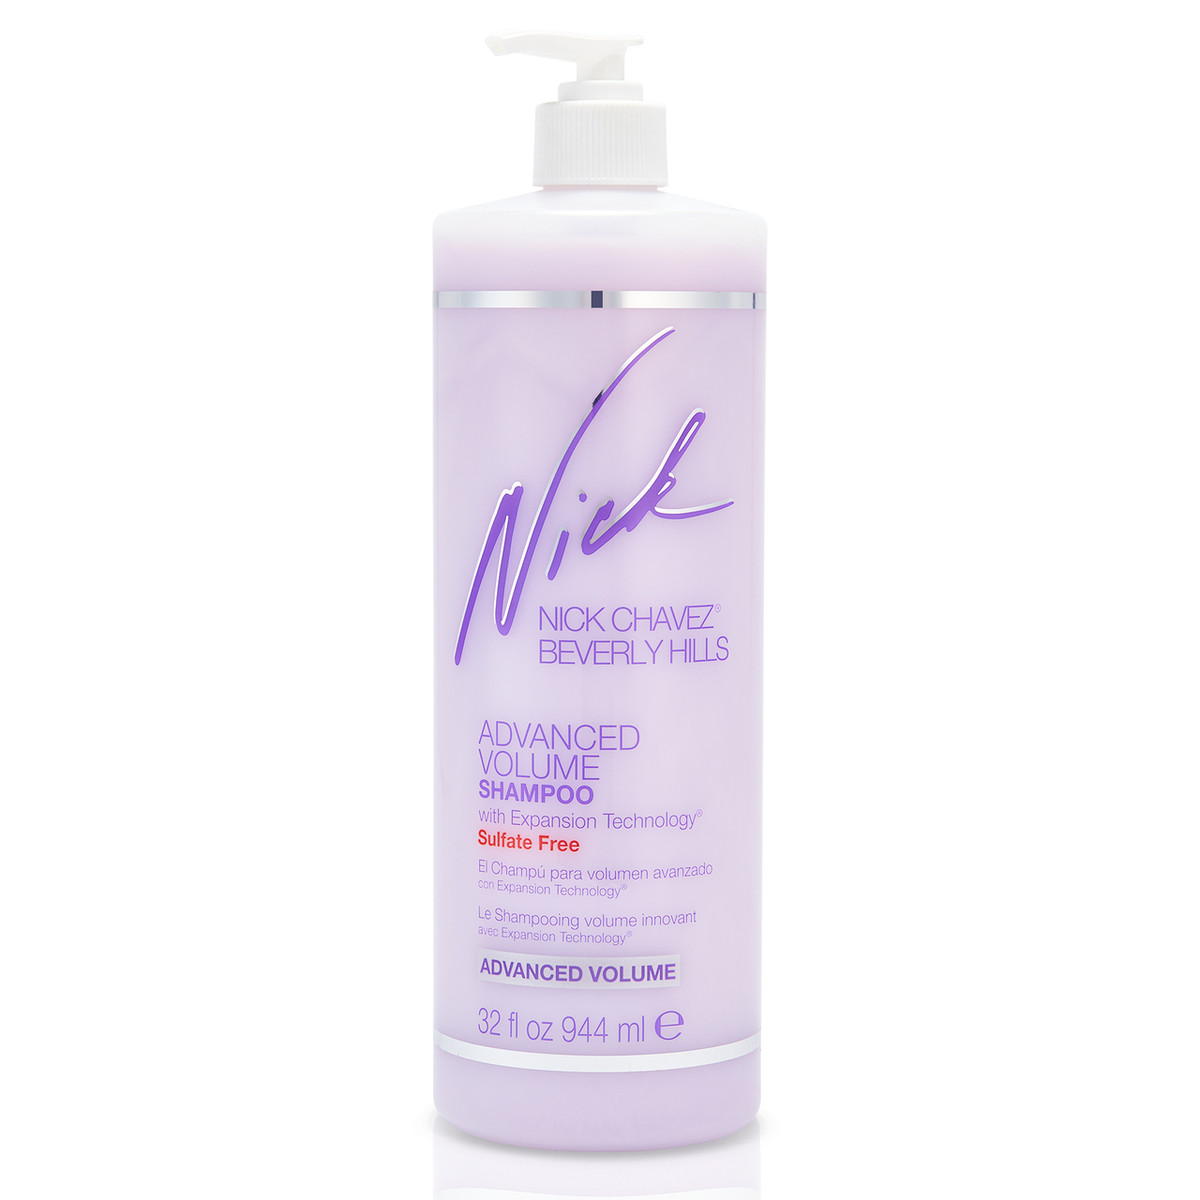 Advanced Volume Sulfate Free Shampoo